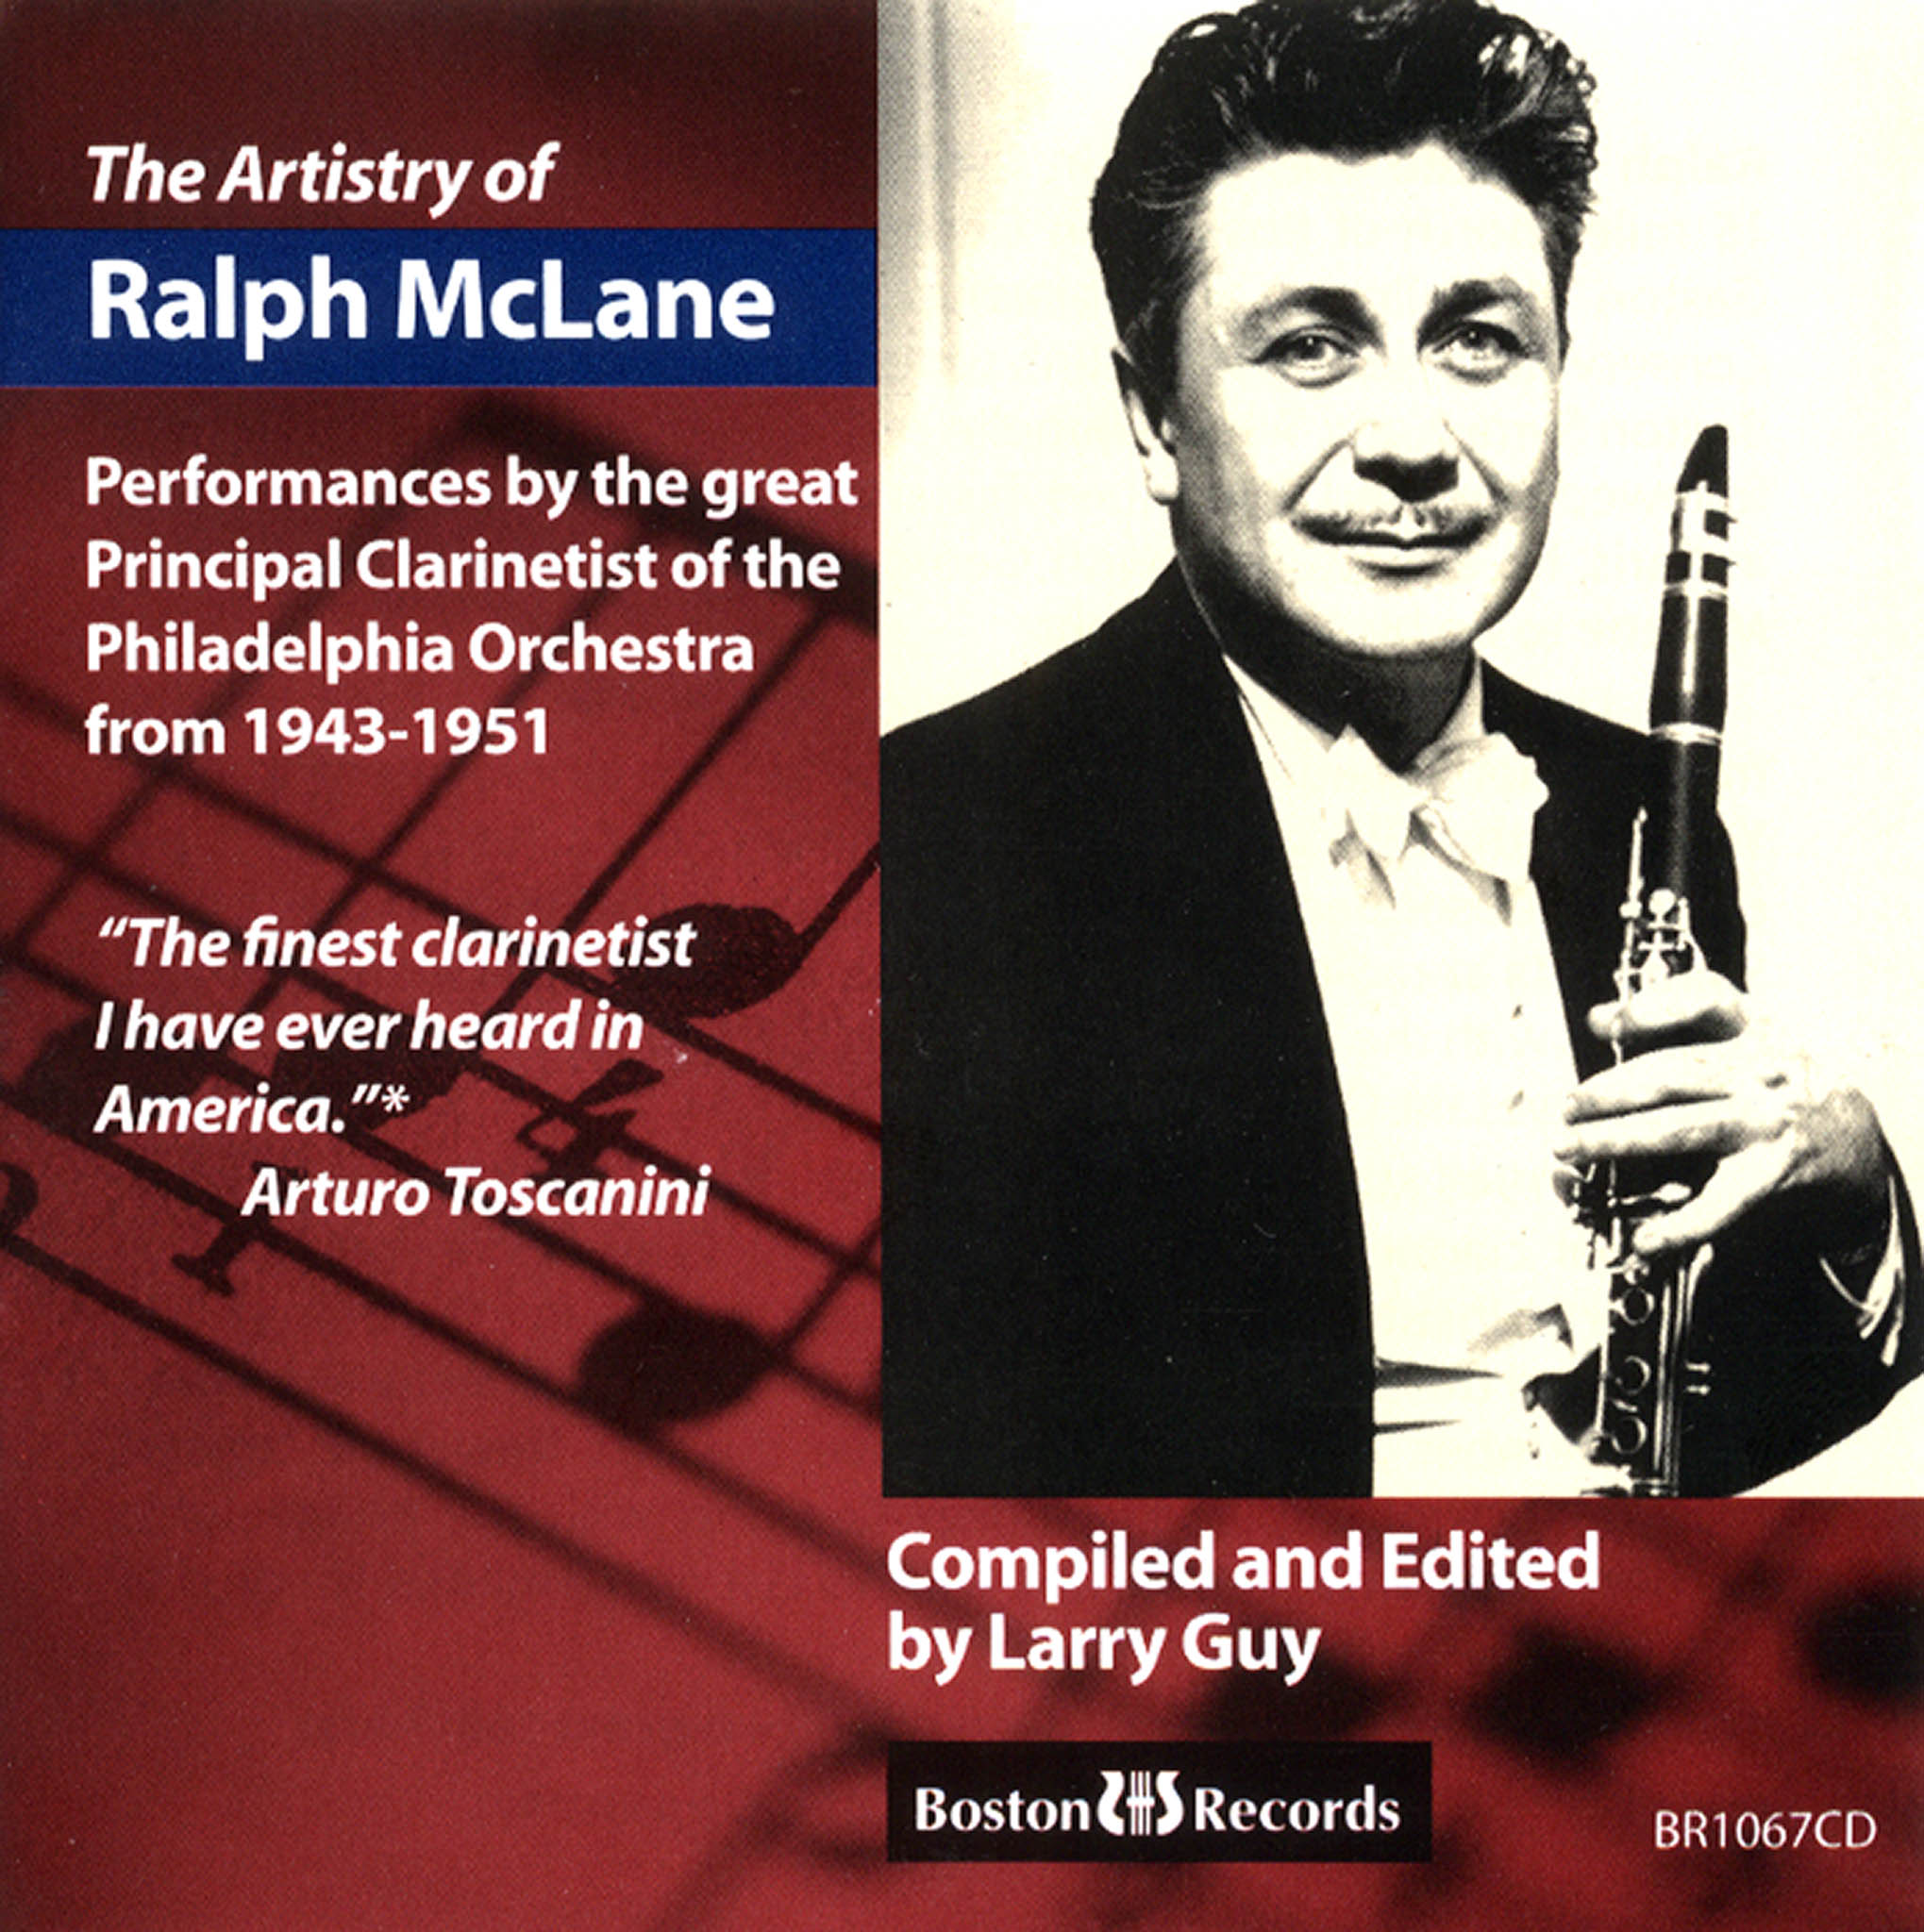 The Artistry of Ralph McLane Cover